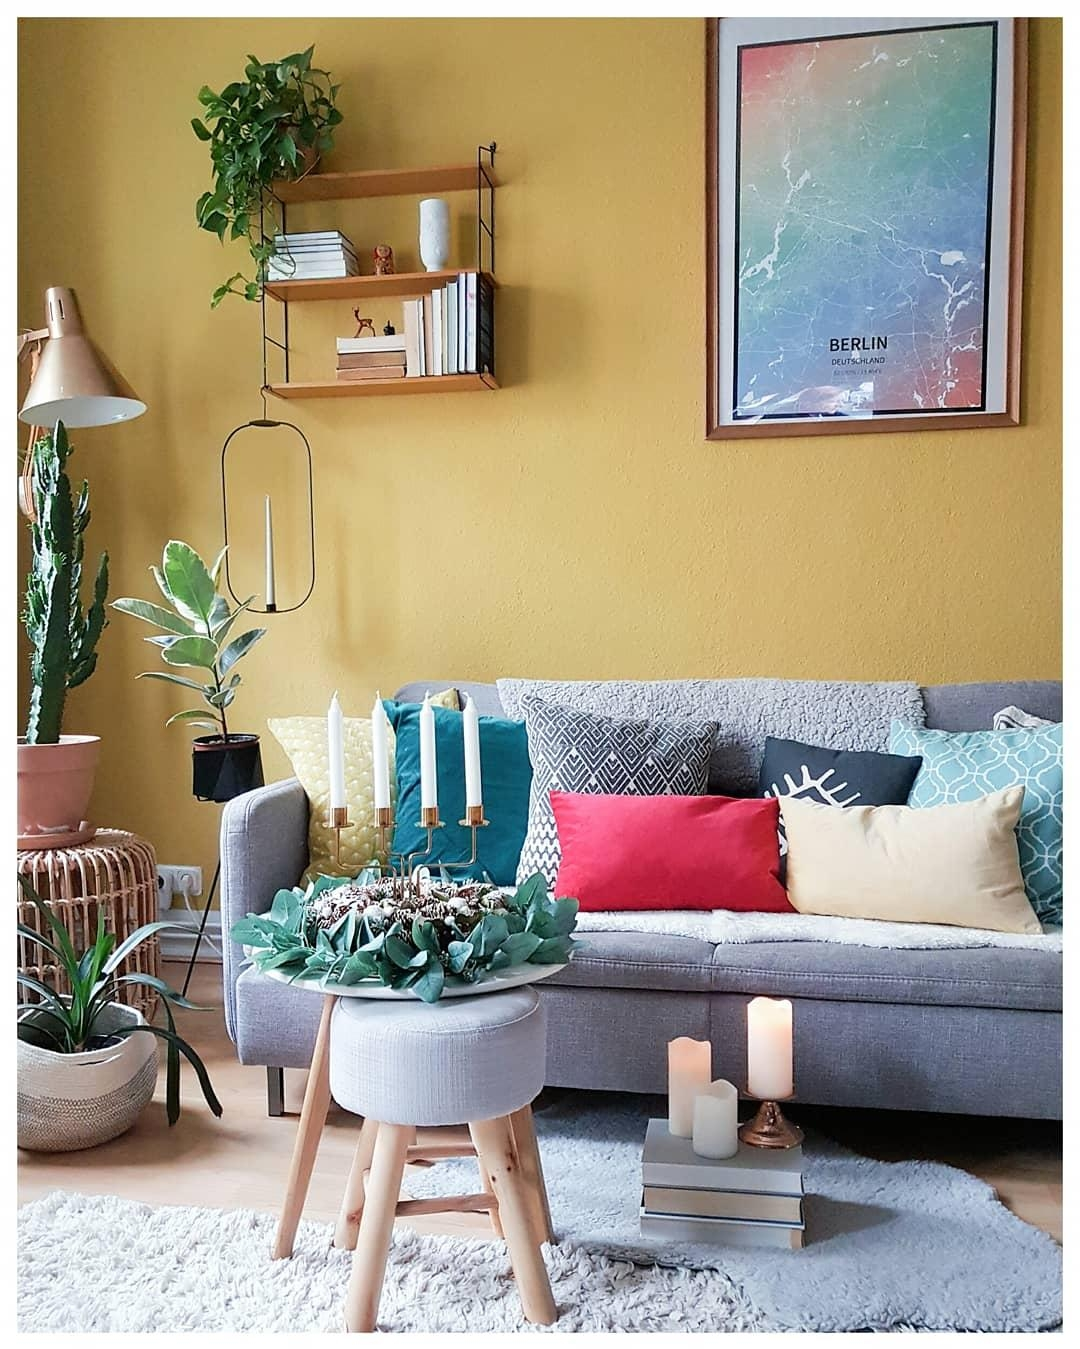 #livingroom #couch #colourful